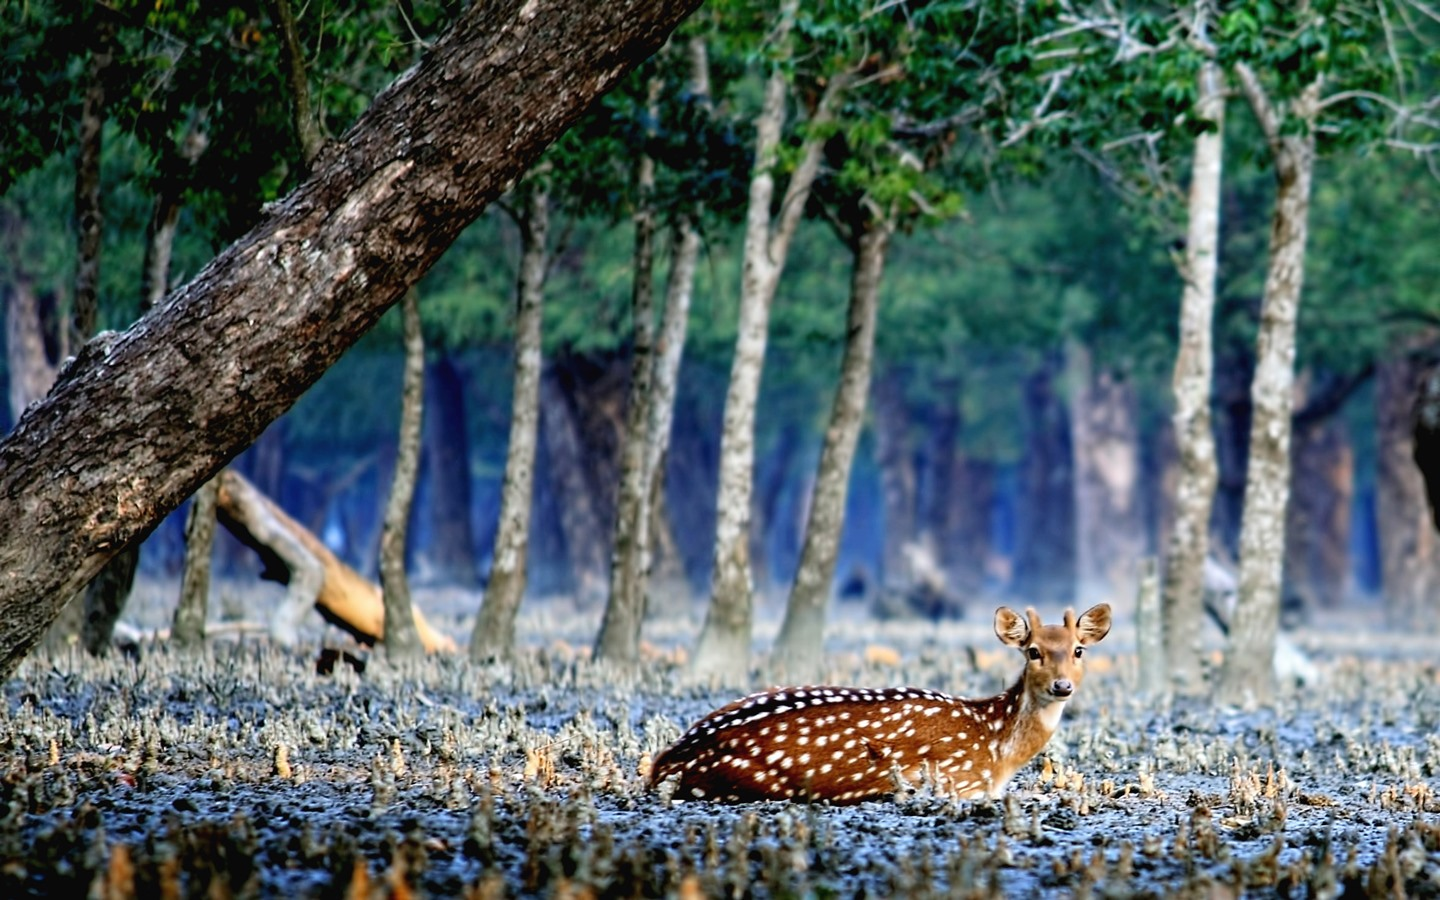 The Sundarbans are among the most beautiful places to visit in Bangladesh